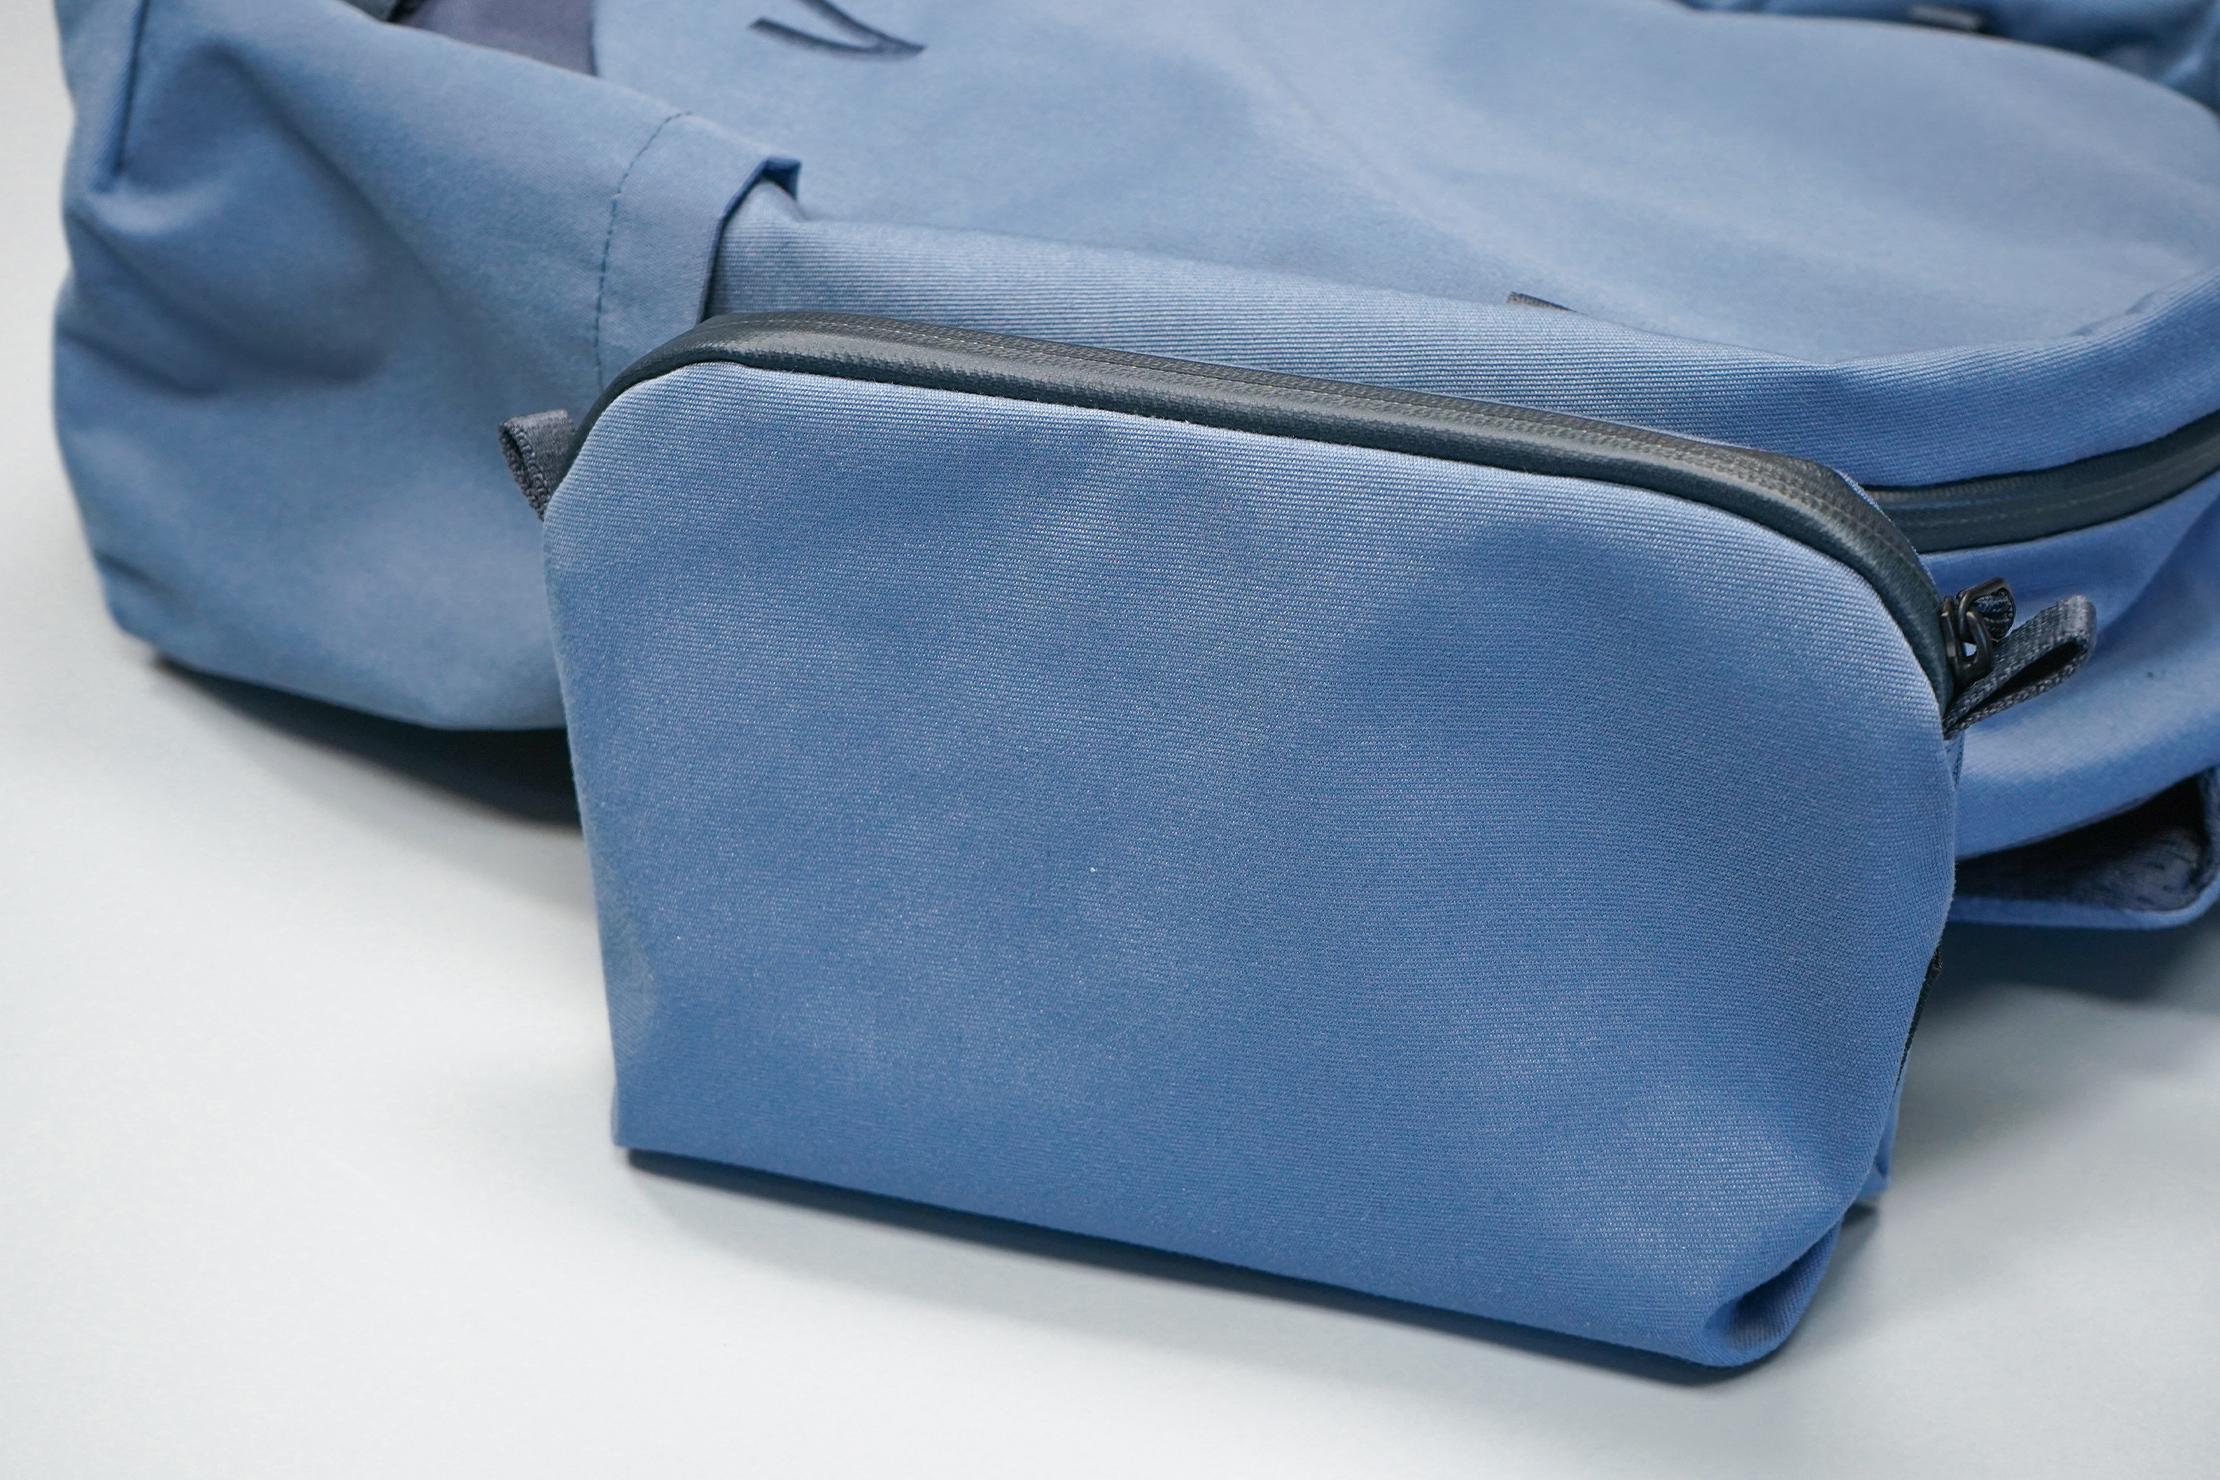 Boundary Supply Rennen Recycled Pouch | The Rennen Recycled Daypack and Pouch